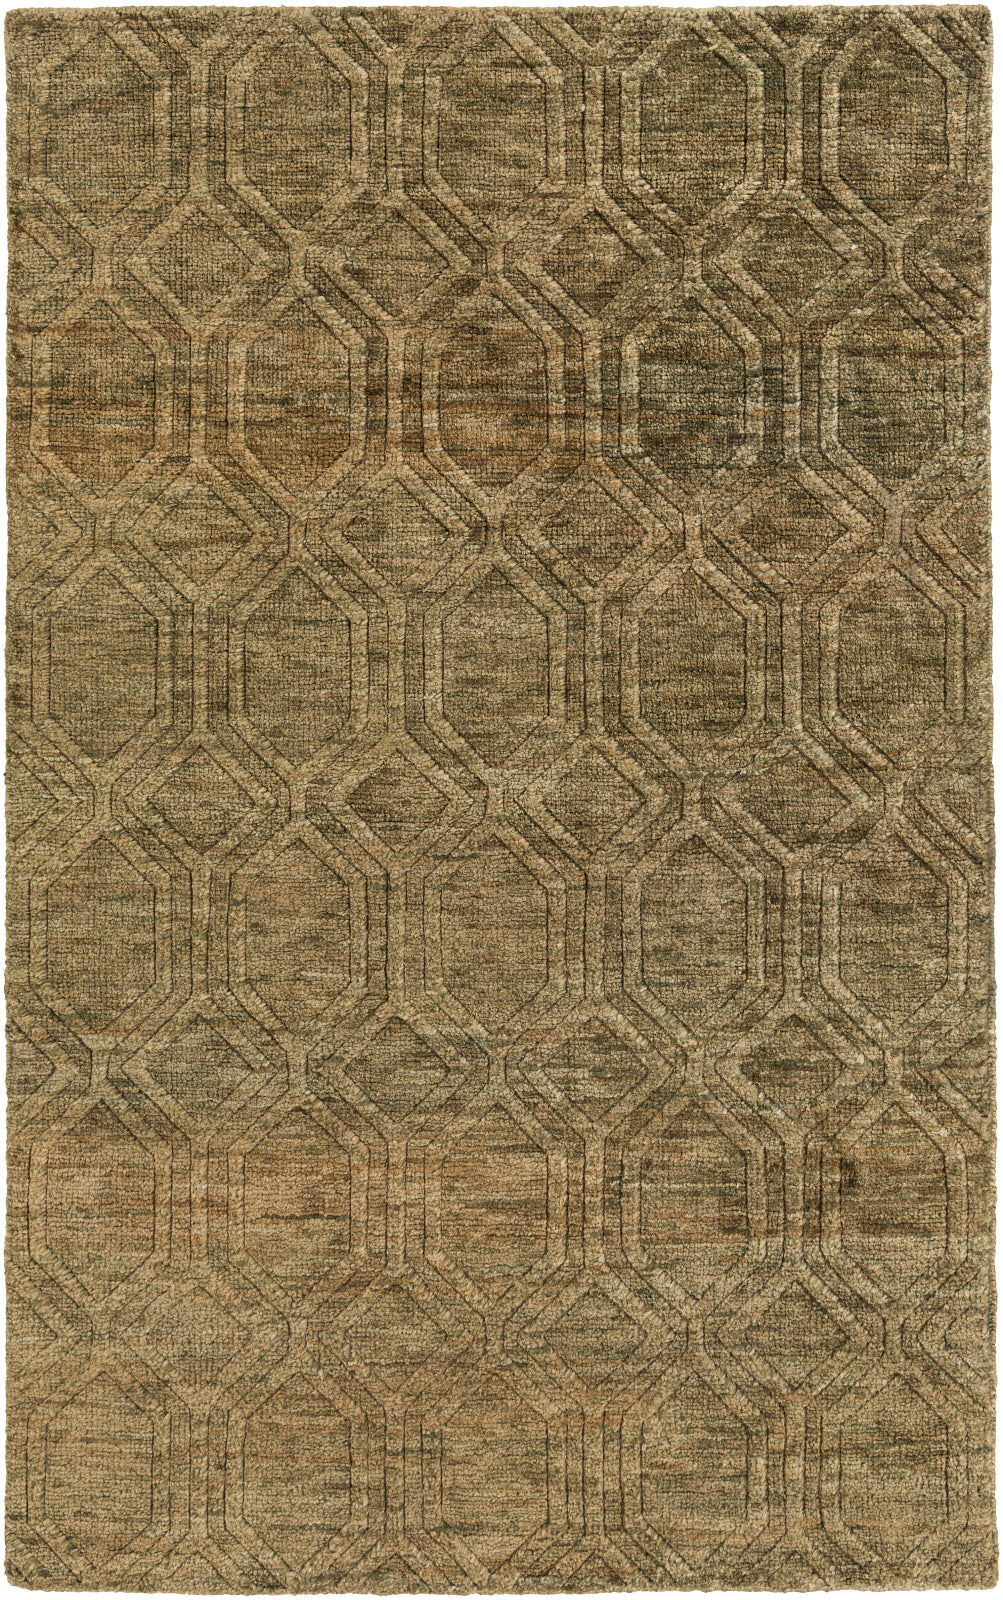 Surya Galloway GLO-1005 Area Rug main image